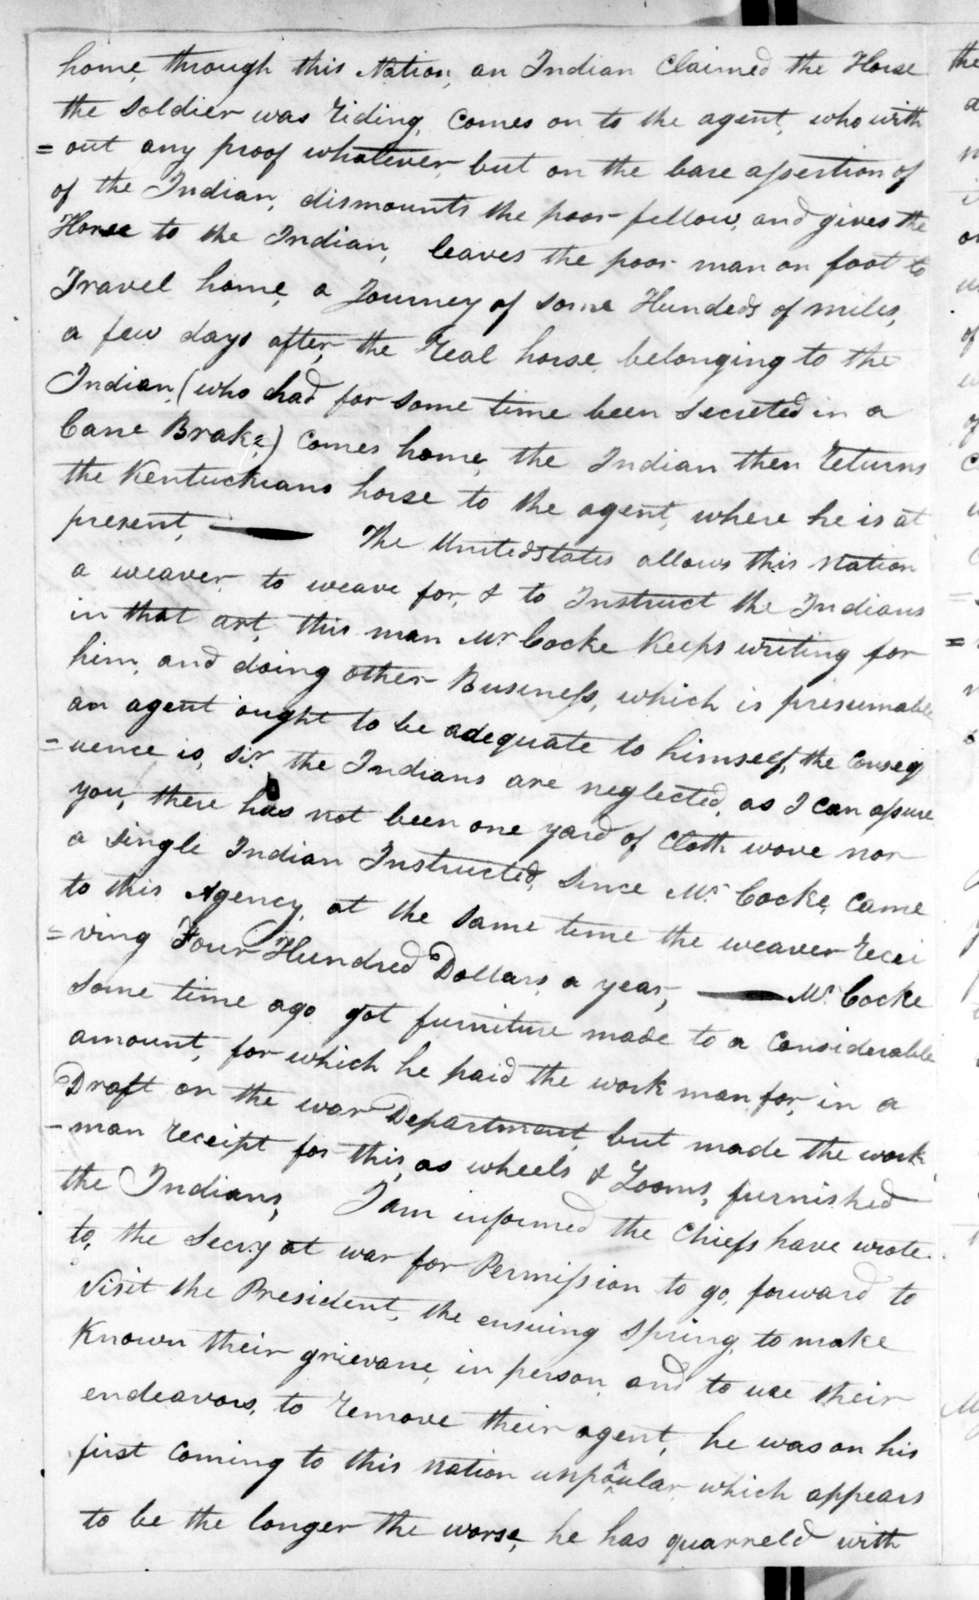 Wigton King to Andrew Jackson, February 12, 1816